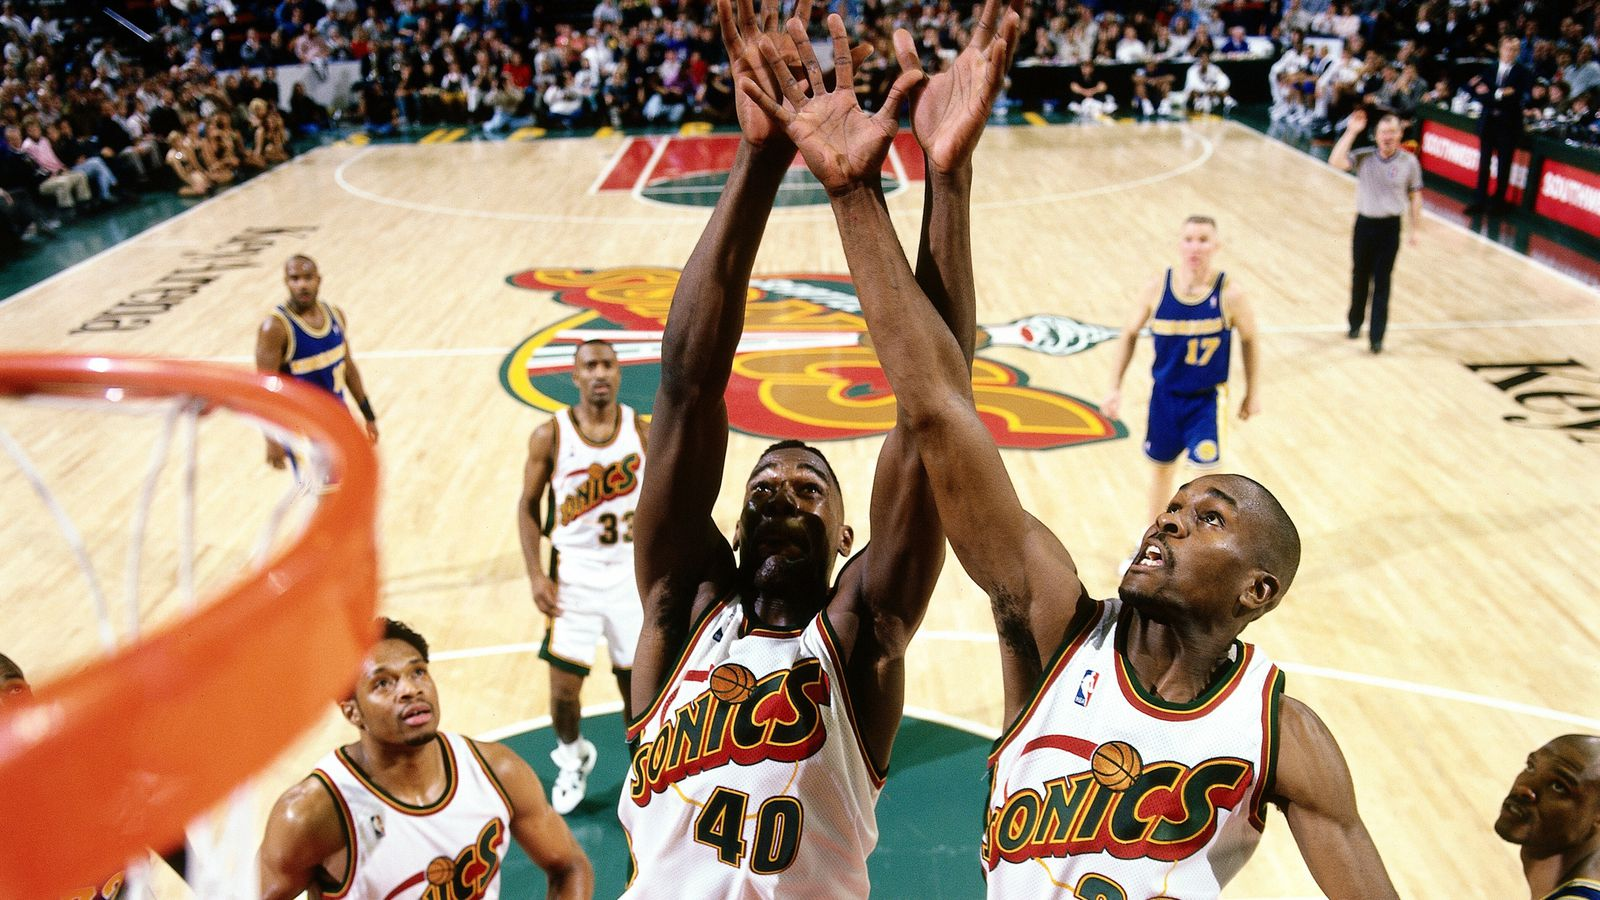 Reign of terror: Shawn Kemp, Gary Payton and the rise of ...